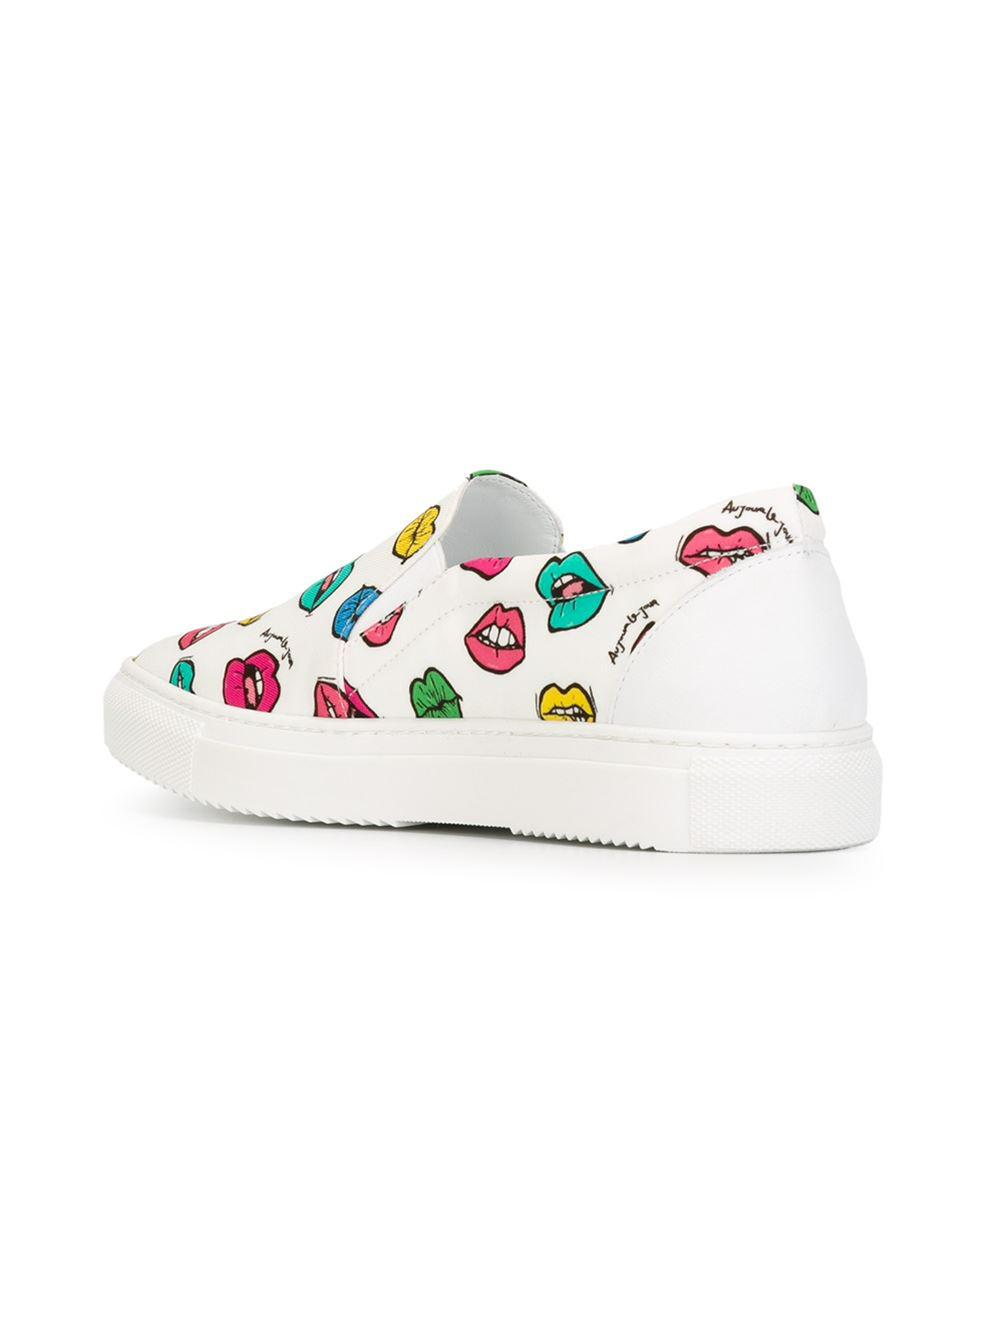 Le White Sneakers Lyst Au Print Mouth In Slip On Jour PTkOiuXwZ